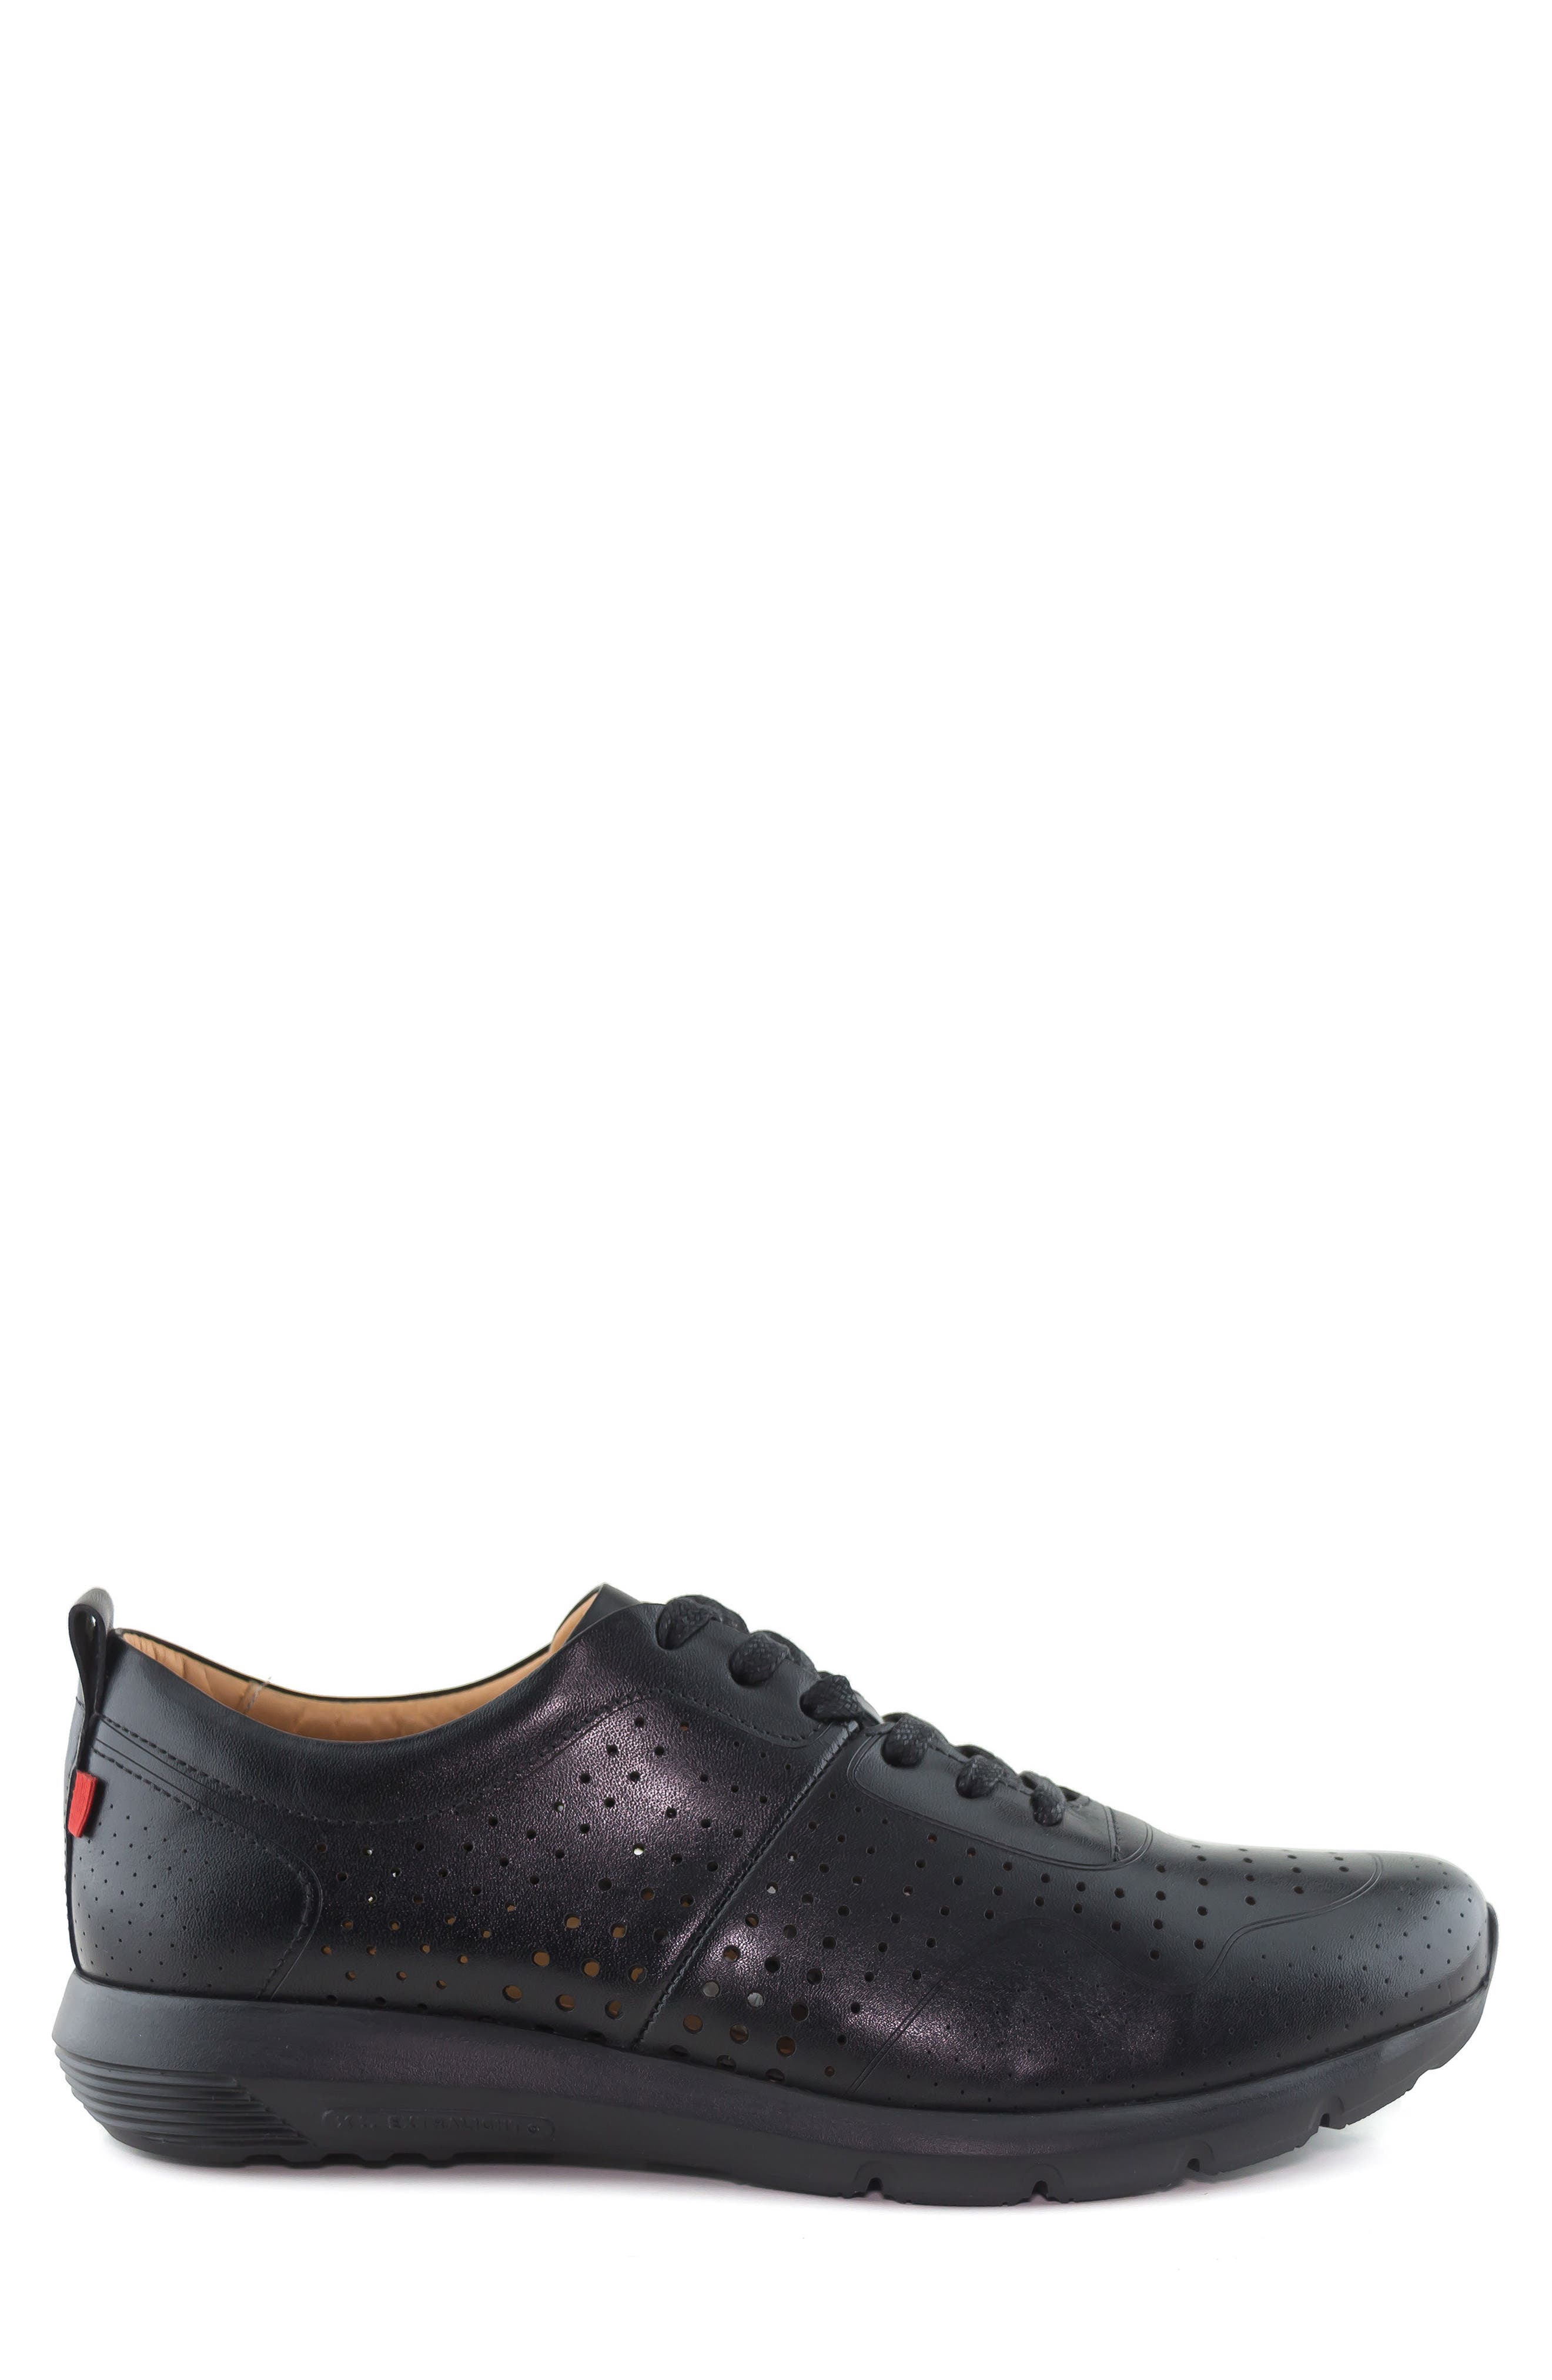 Grand Central Perforated Sneaker,                             Alternate thumbnail 3, color,                             BLACK